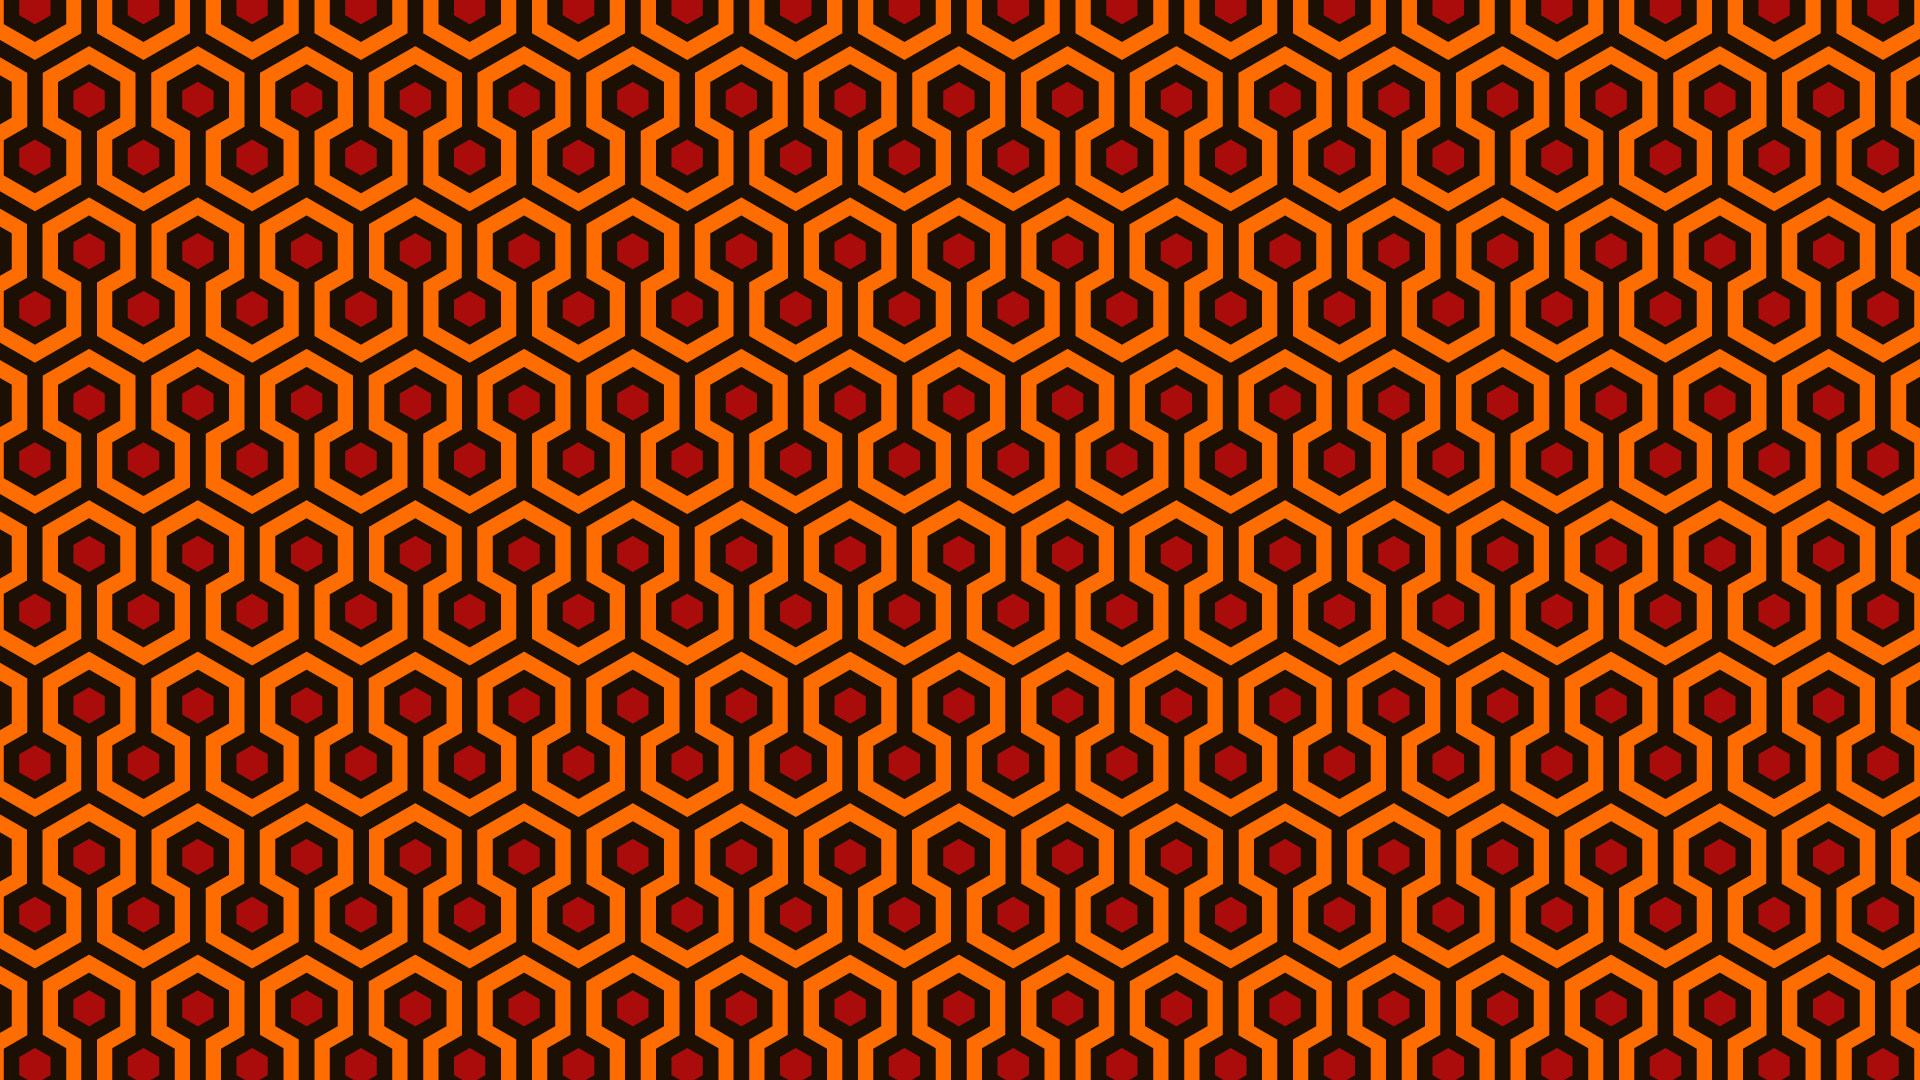 Overlook hotel carpet wallpaper